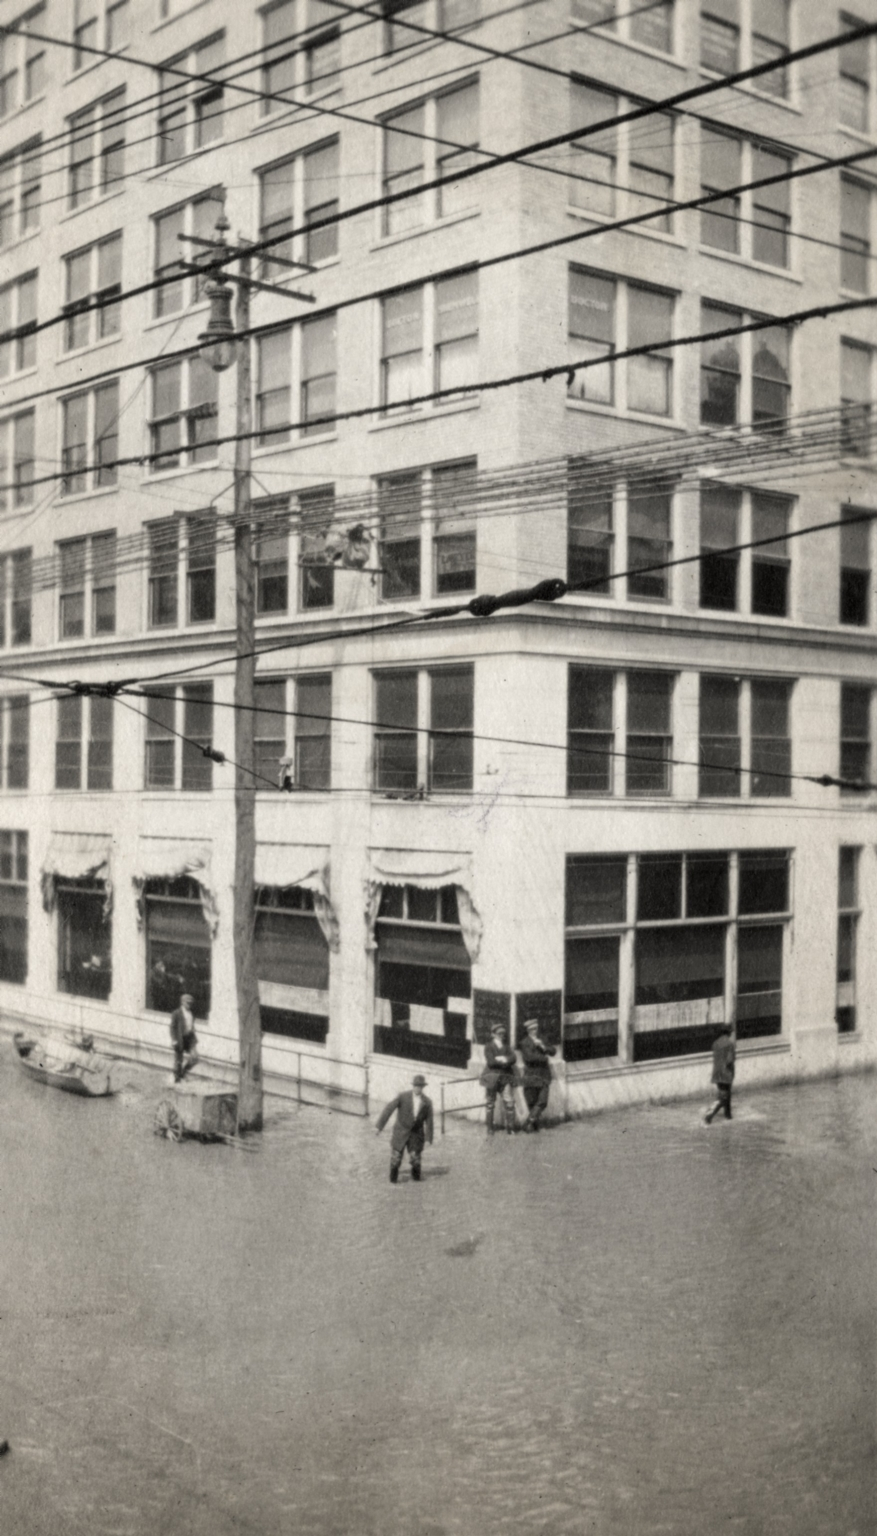 View of Citizens Bank building at Broadway and 4th Street during April 1913 flood